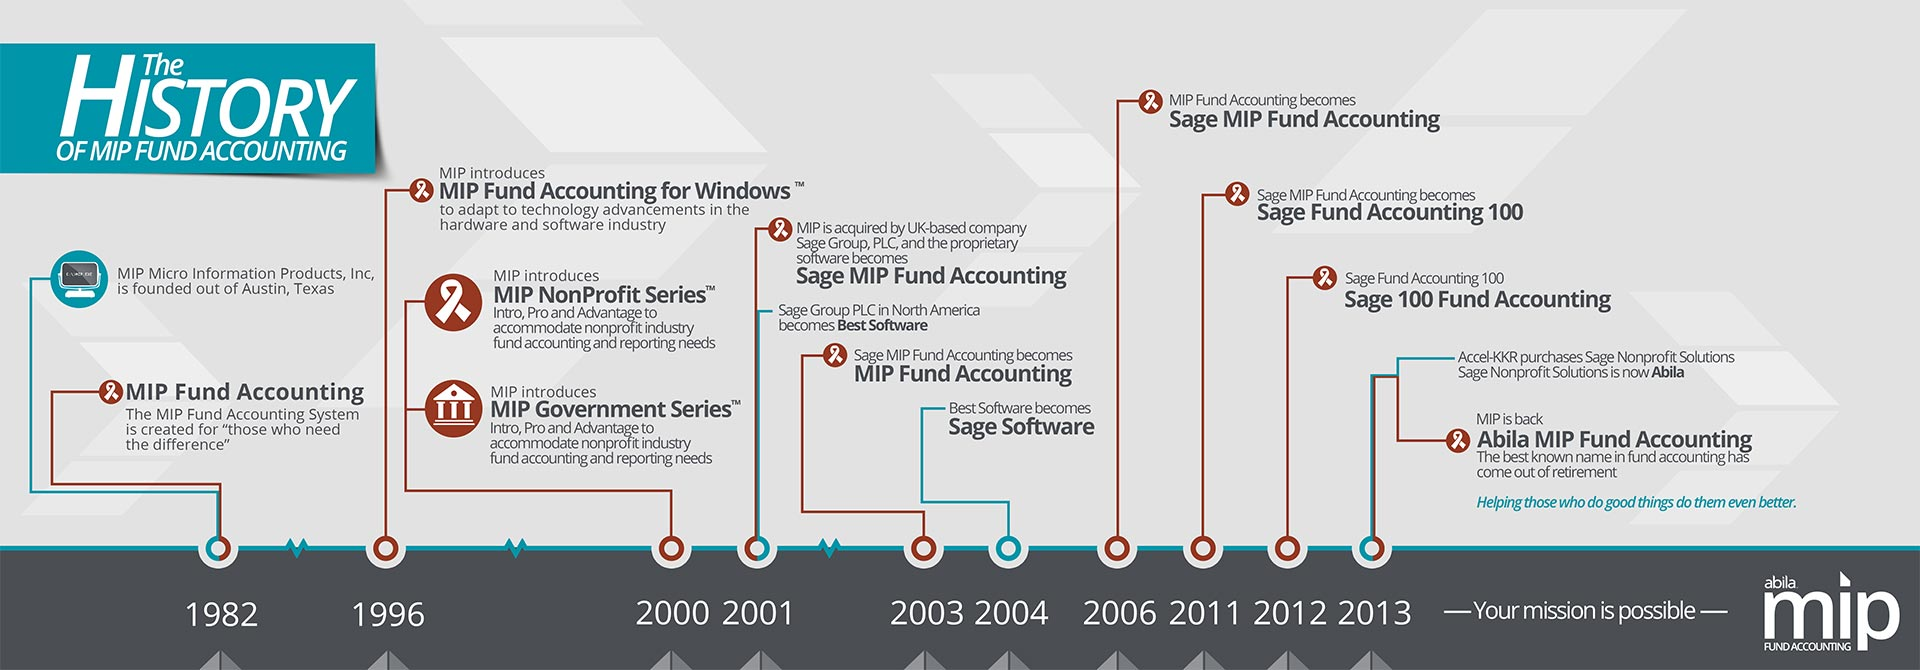 The History of MIP Fund Accounting Infographic